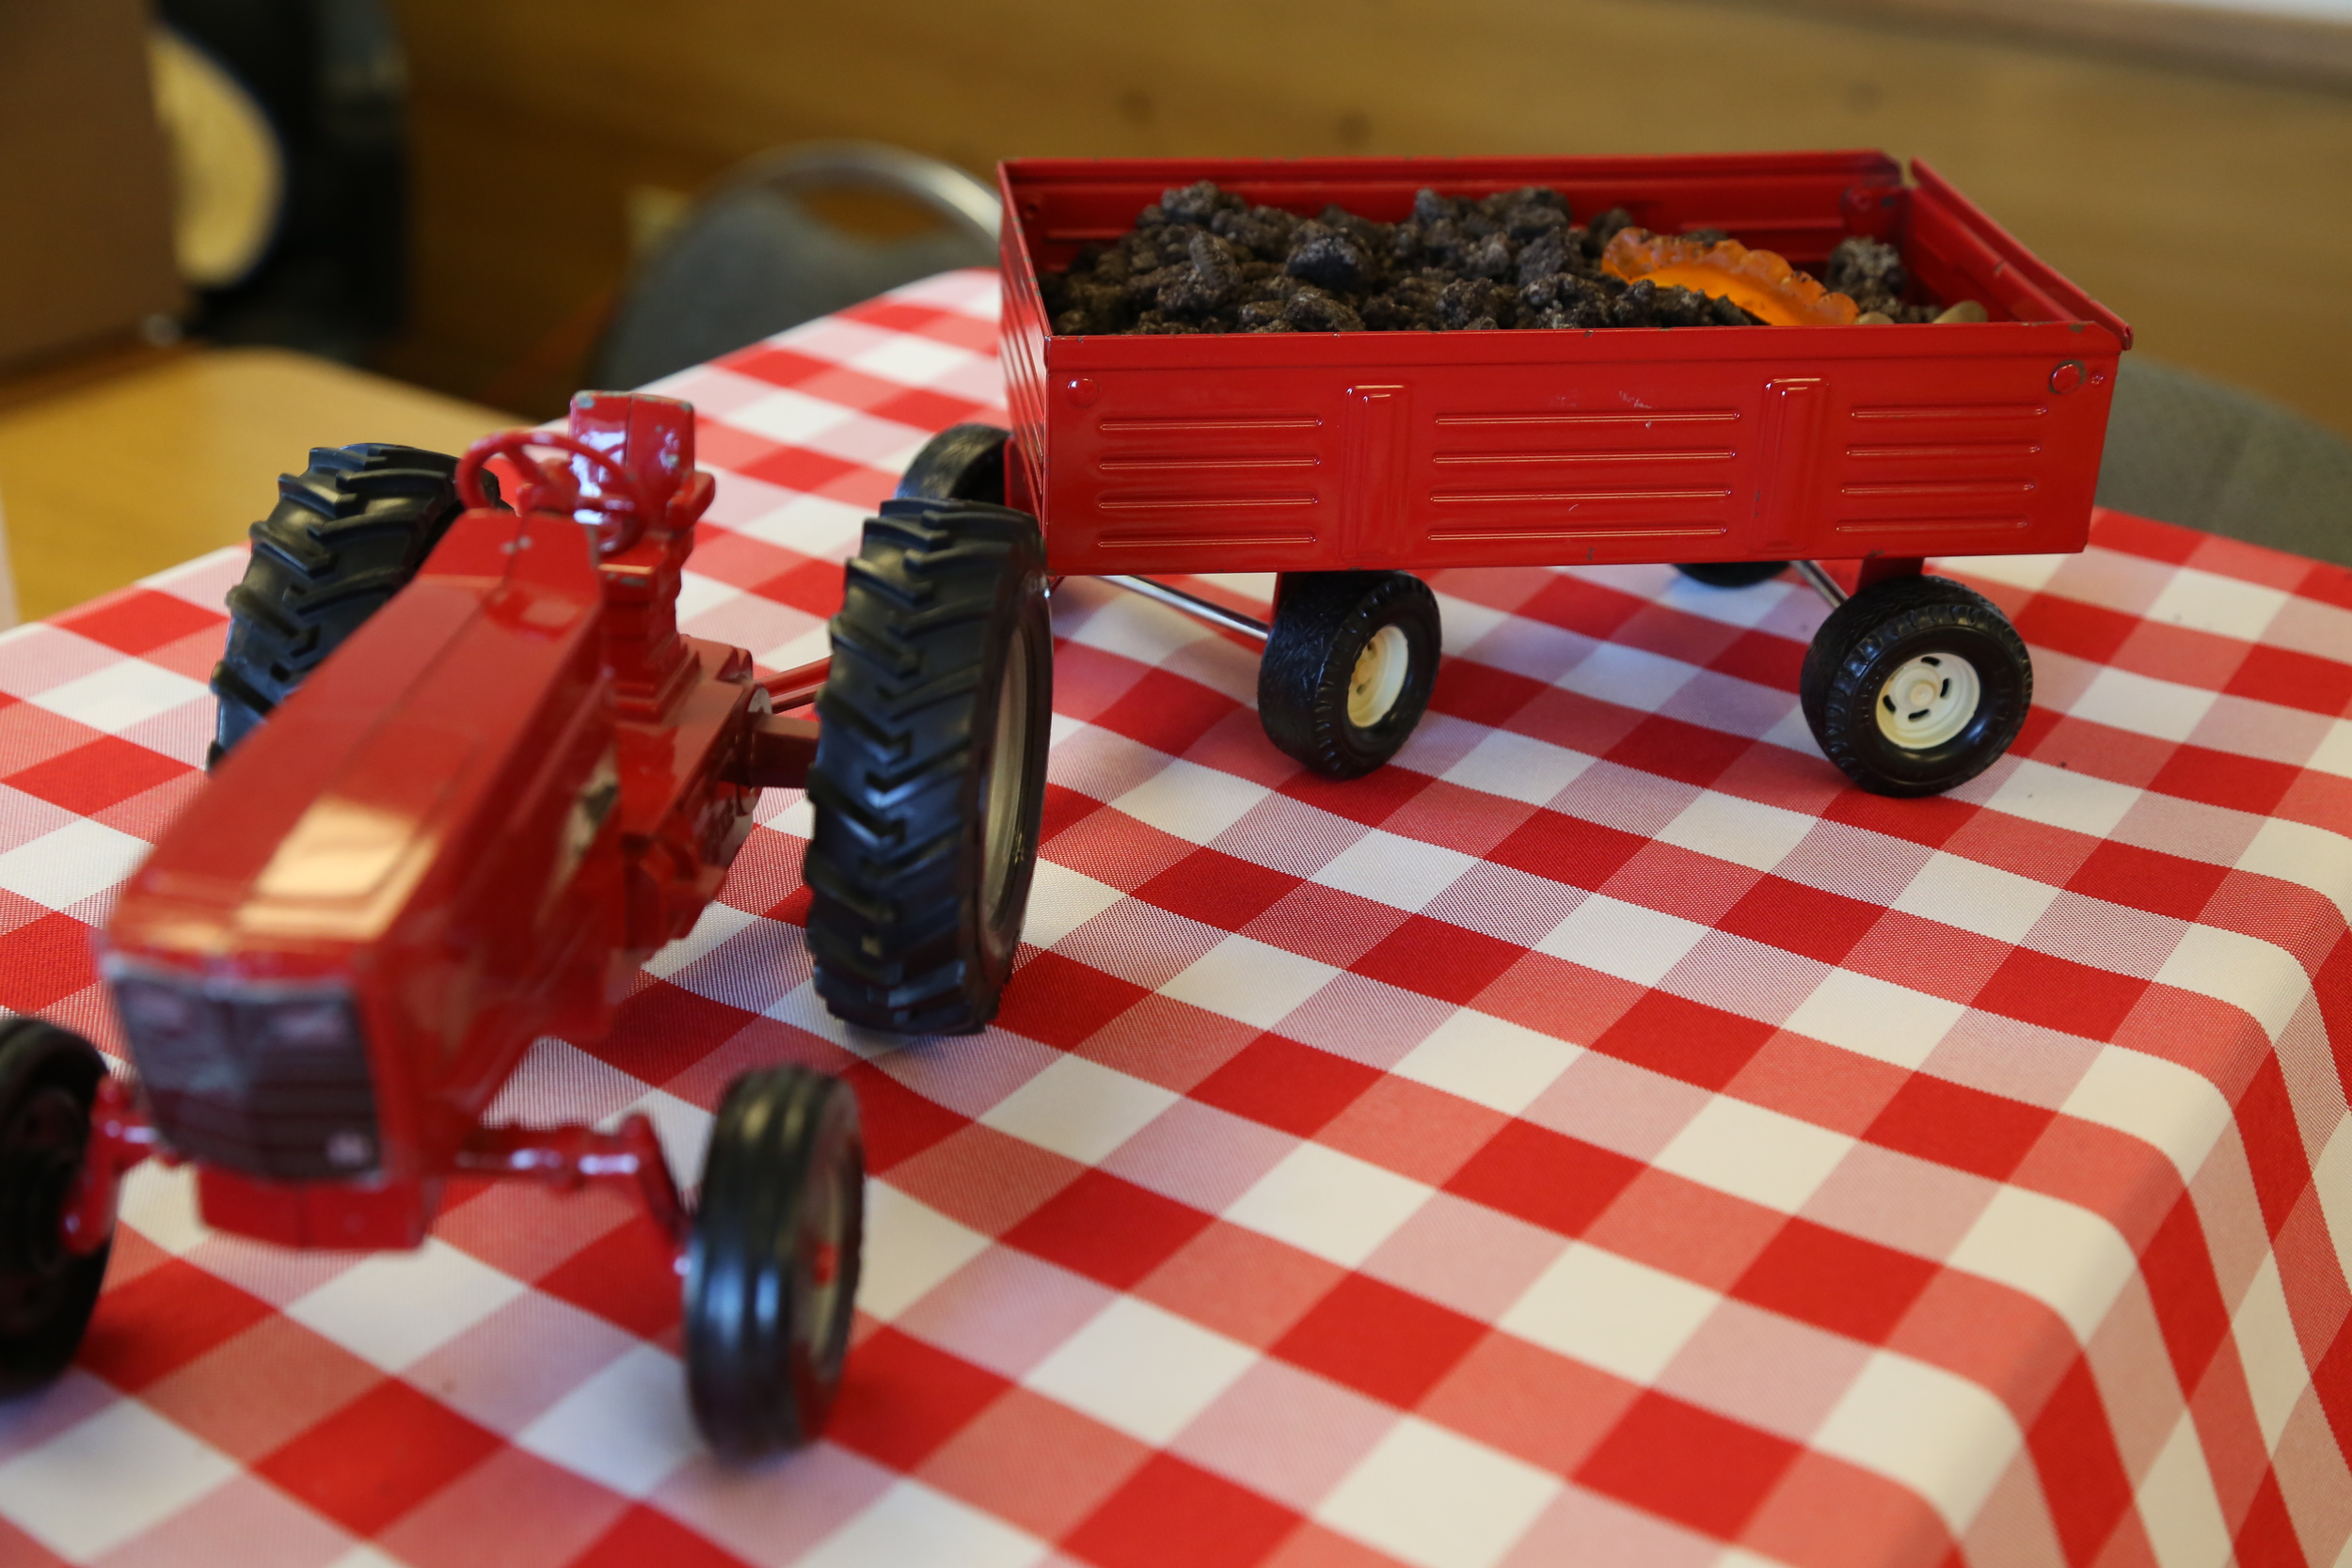 """The """"cake!""""  This is Geoff's old tractor.  In the trailer is a big brownie topped with Oreo crumbs and worms.  The guests had Oreo pudding cups I made and topped with Oreo crumbs and gummy worms."""